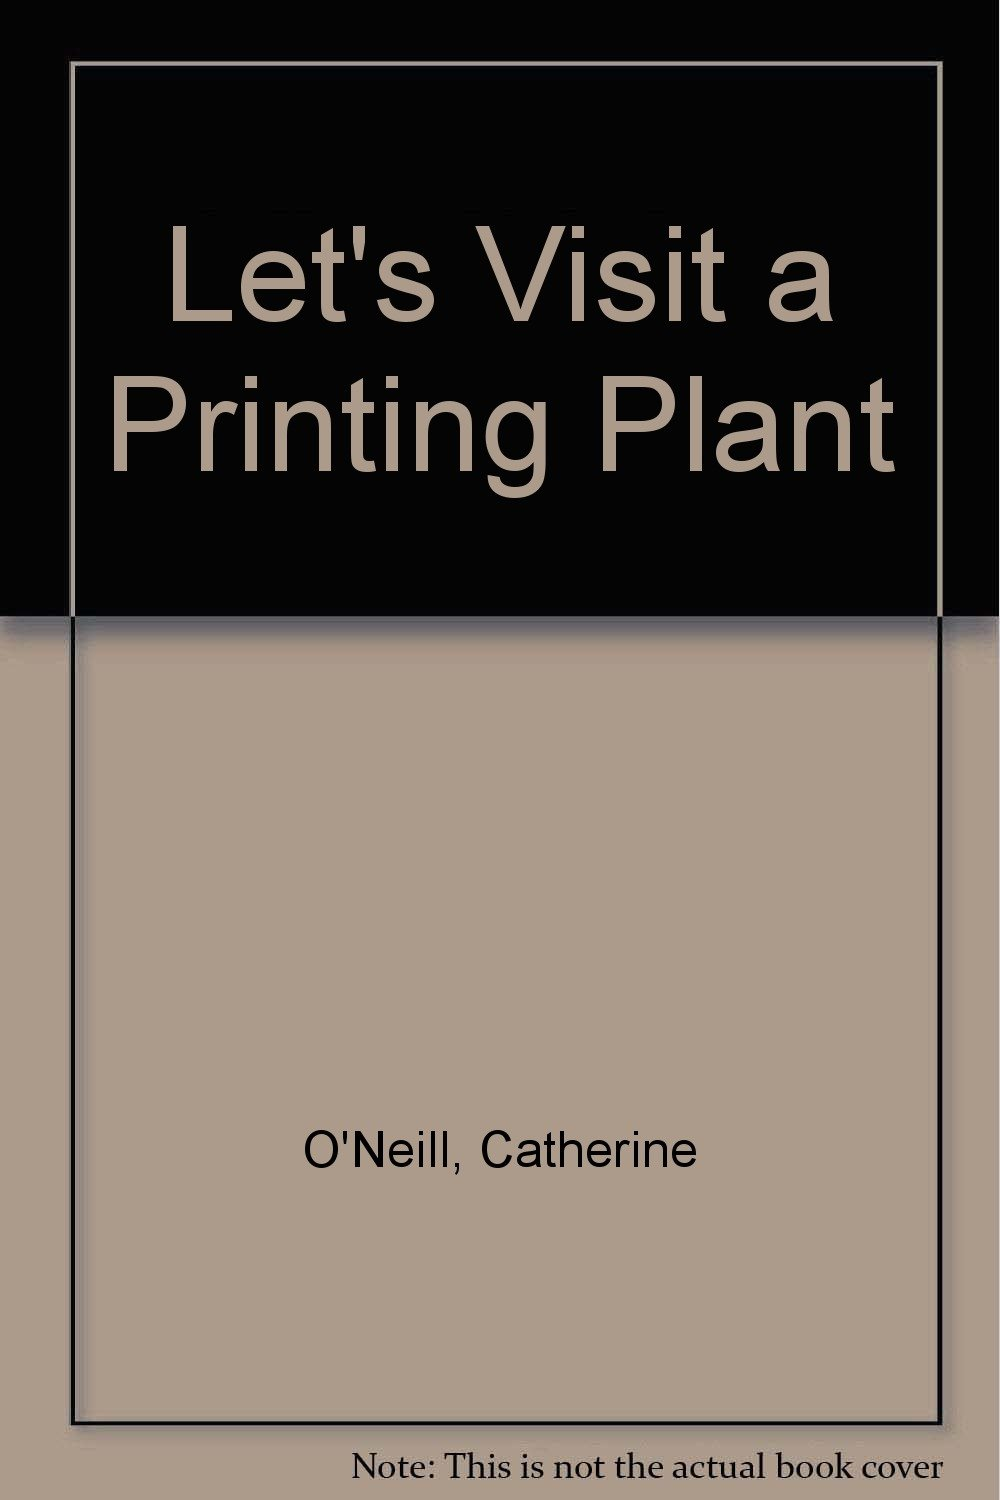 Let's Visit a Printing Plant, O'Neill, Catherine